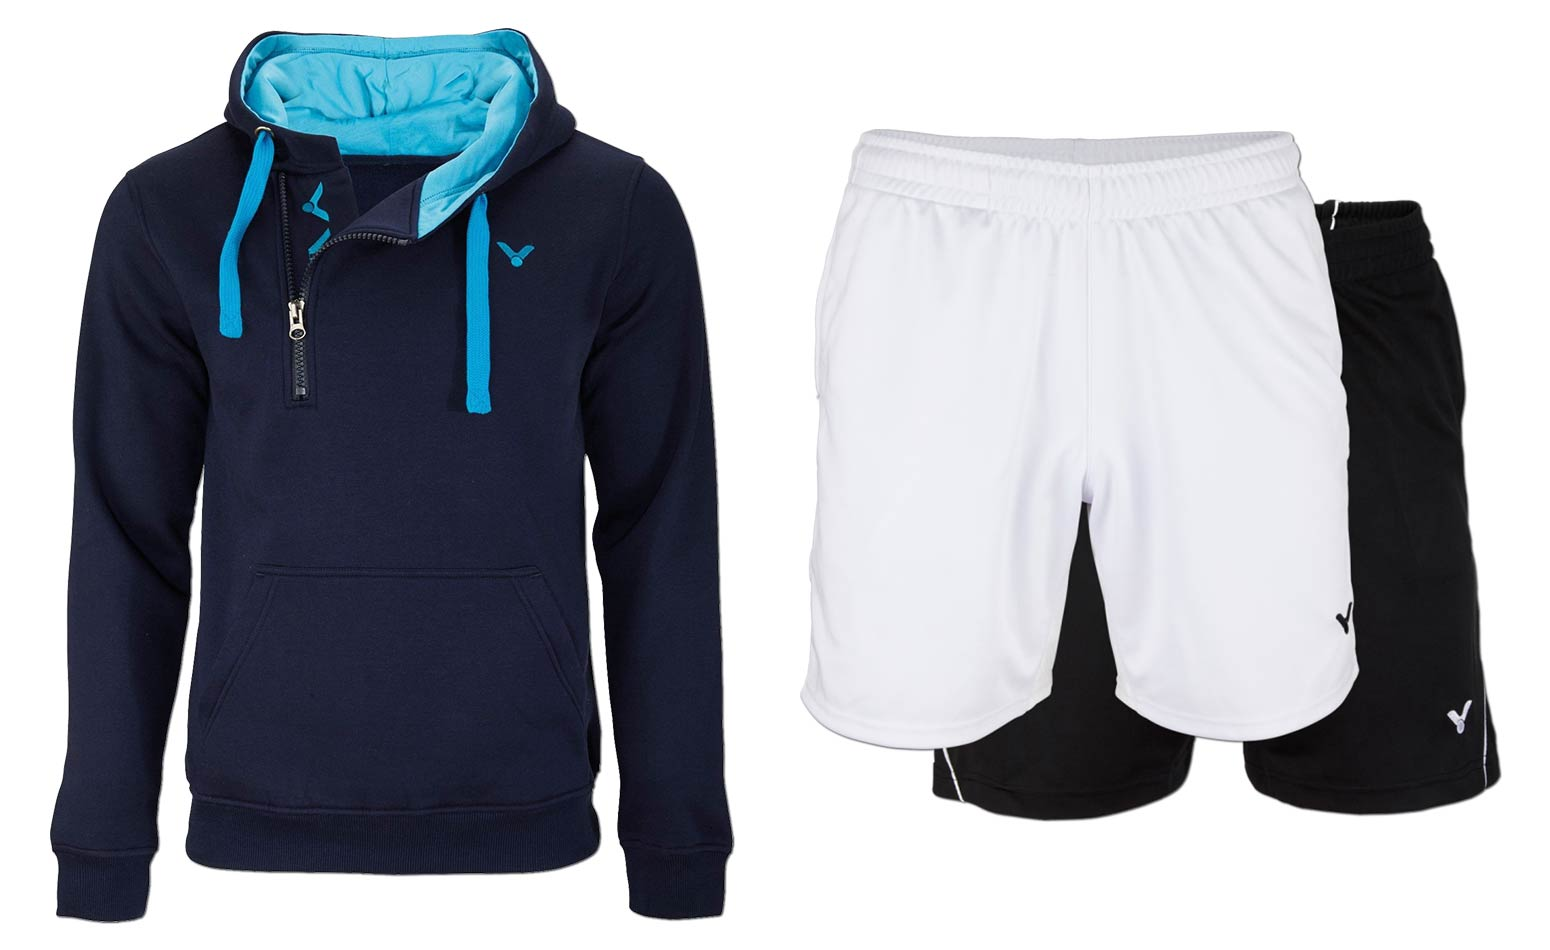 Vereinskleidung - Sweater + Shorts